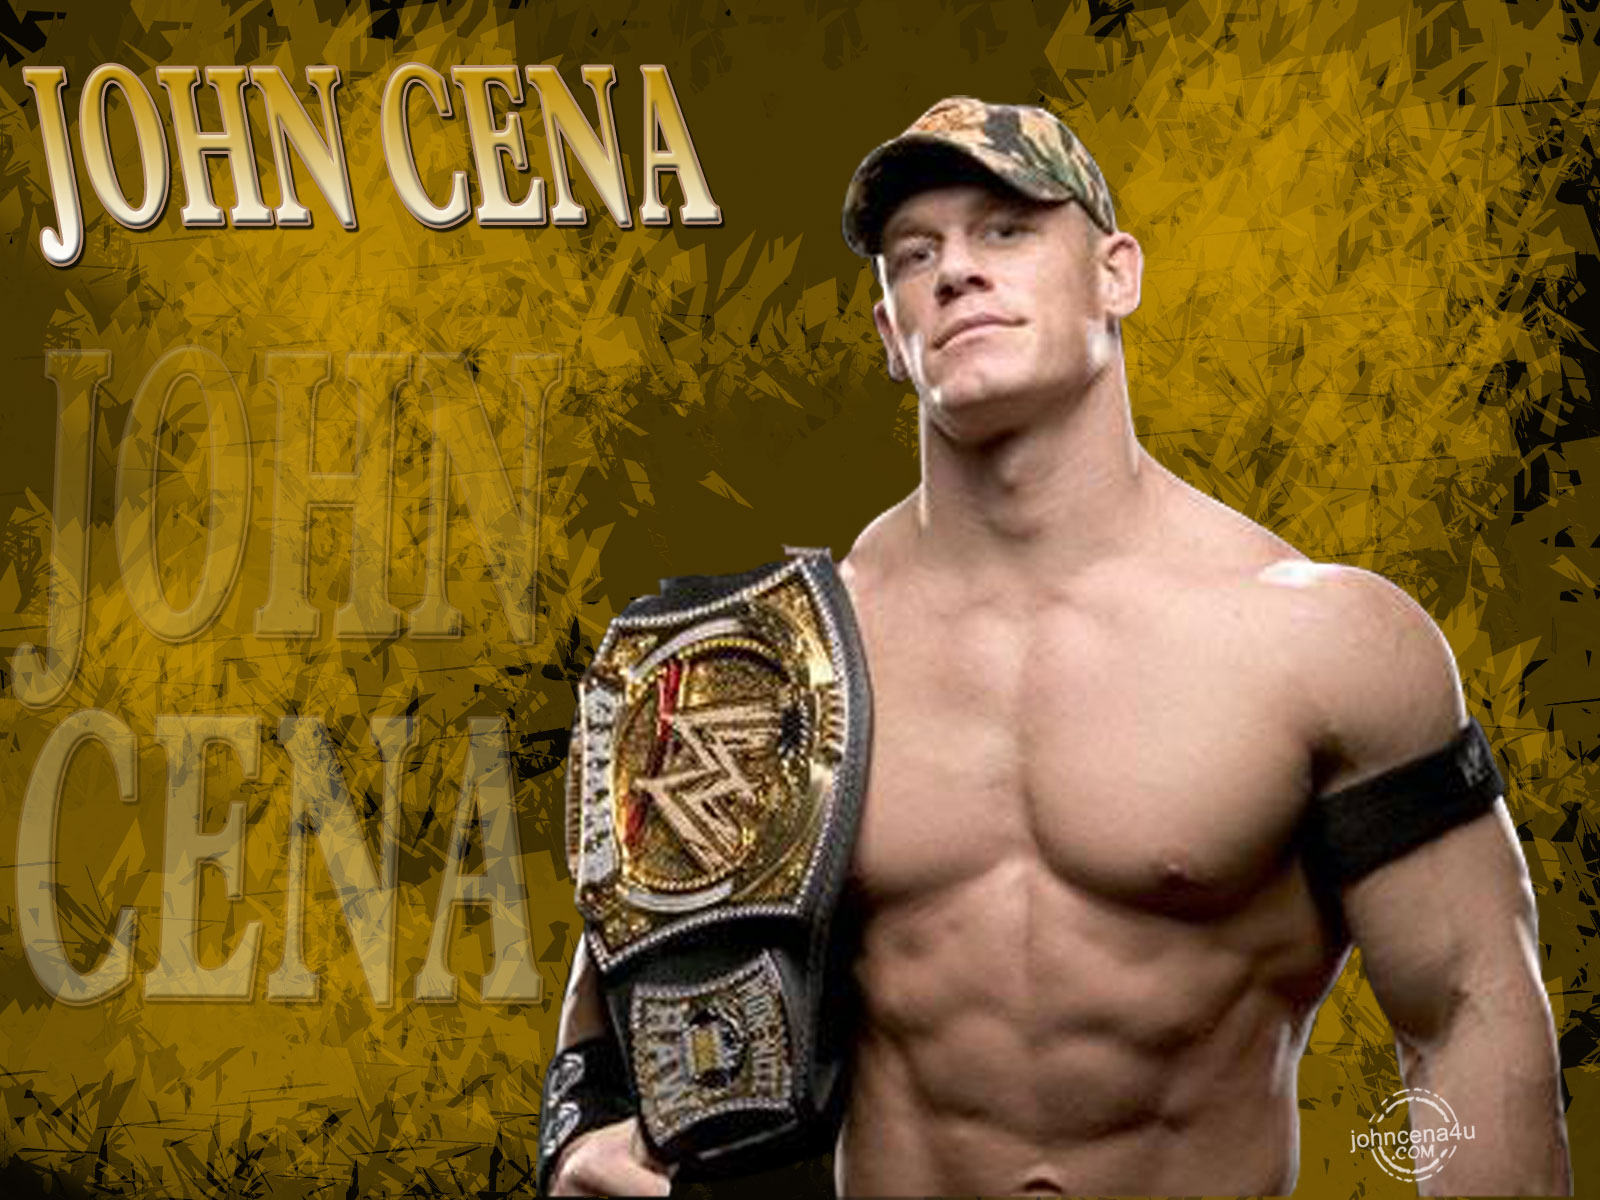 john cena wallpaper champion HD Desktop Wallpapers 4k HD